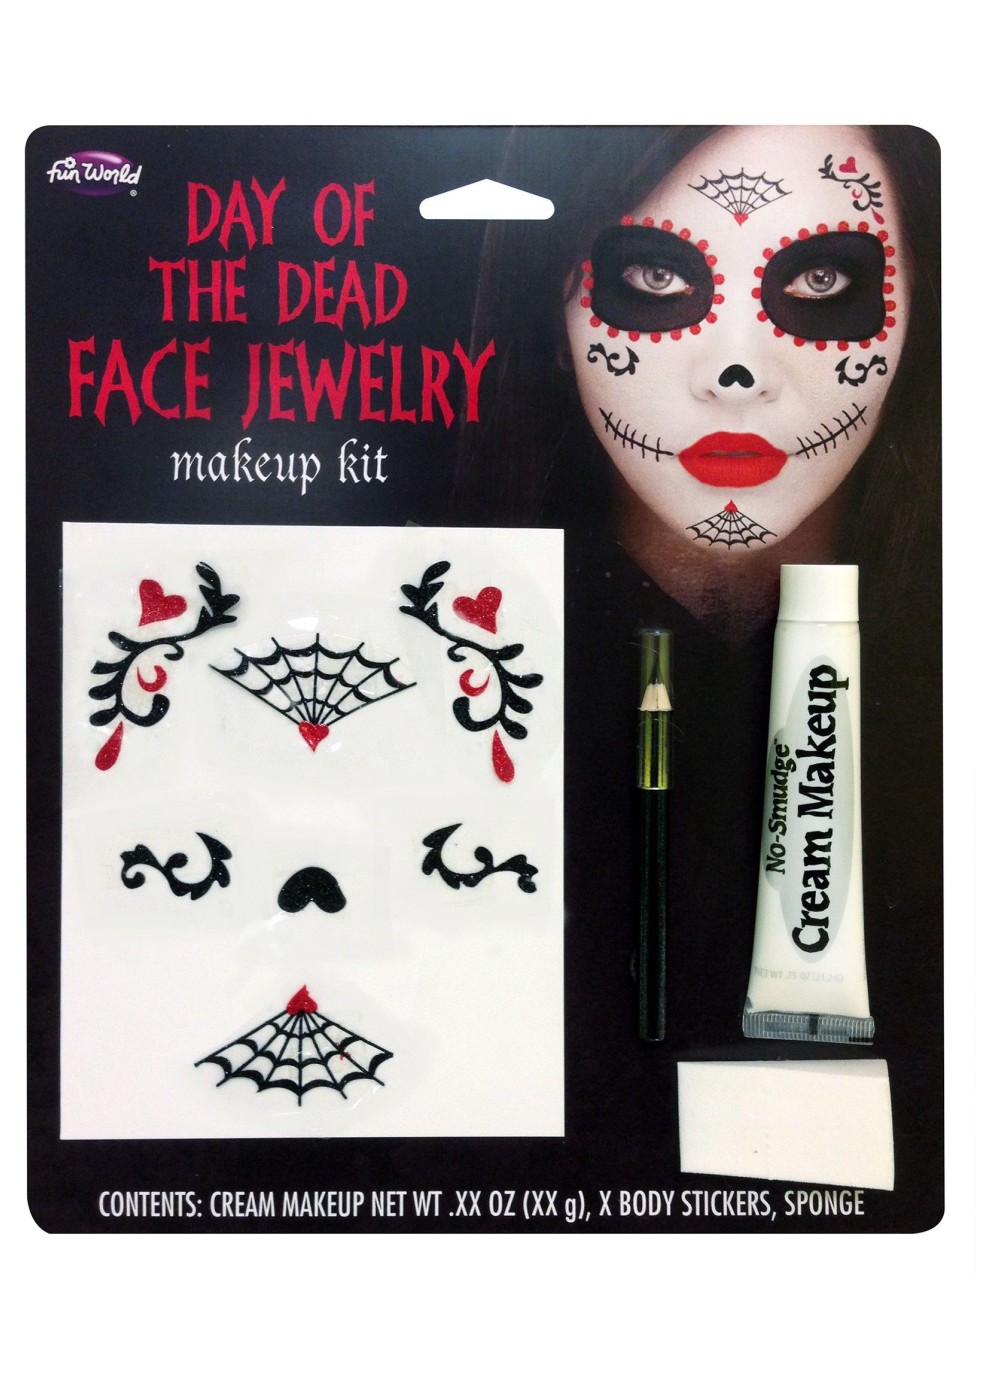 day of the dead face jewelry makeup kit accessories